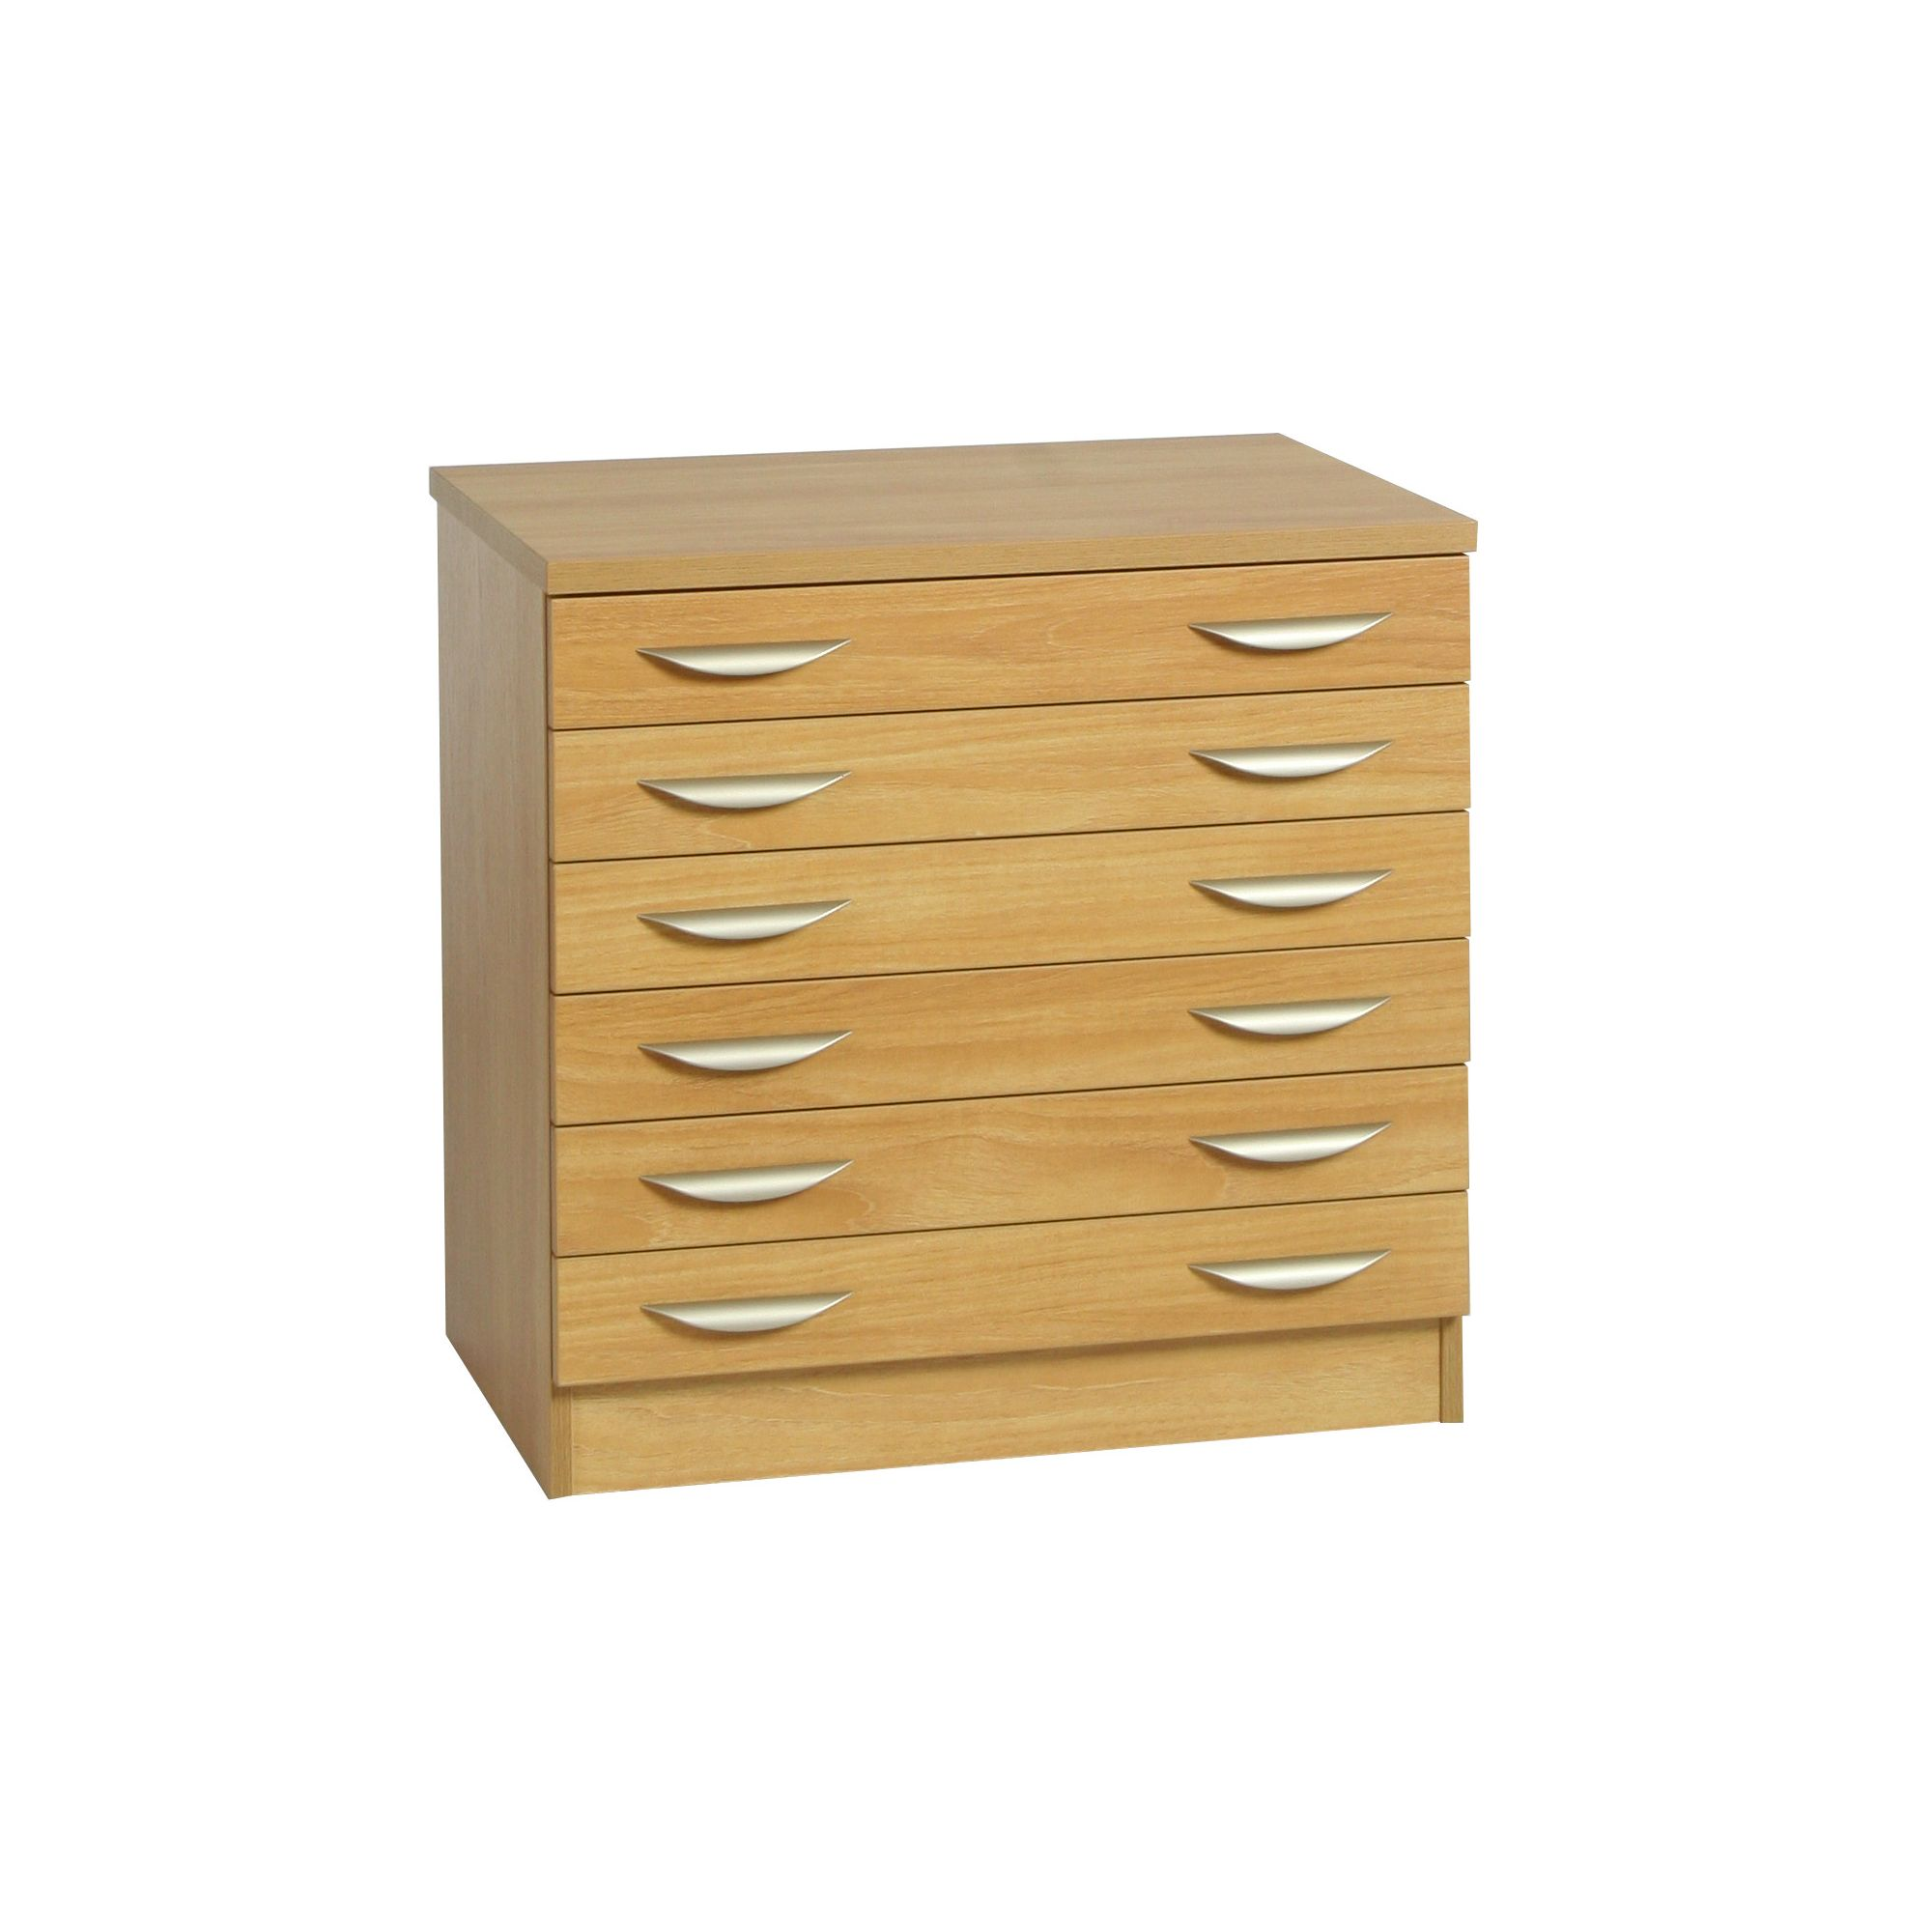 R White Cabinets Six Drawer Wooden Unit - Teak